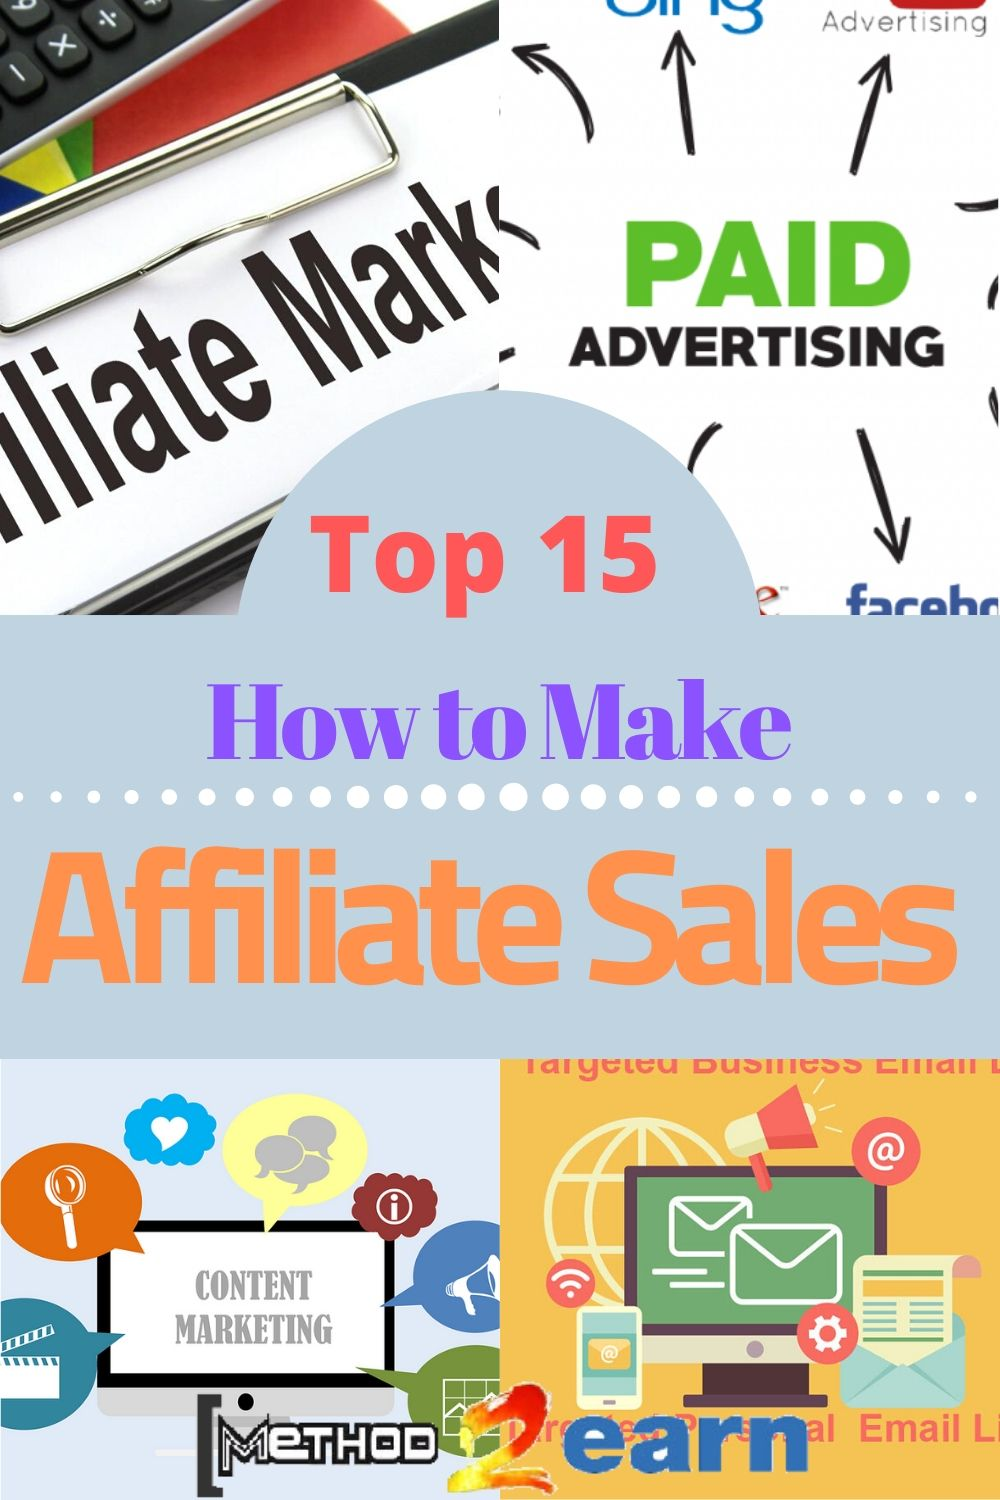 How to Make Affiliate Sales